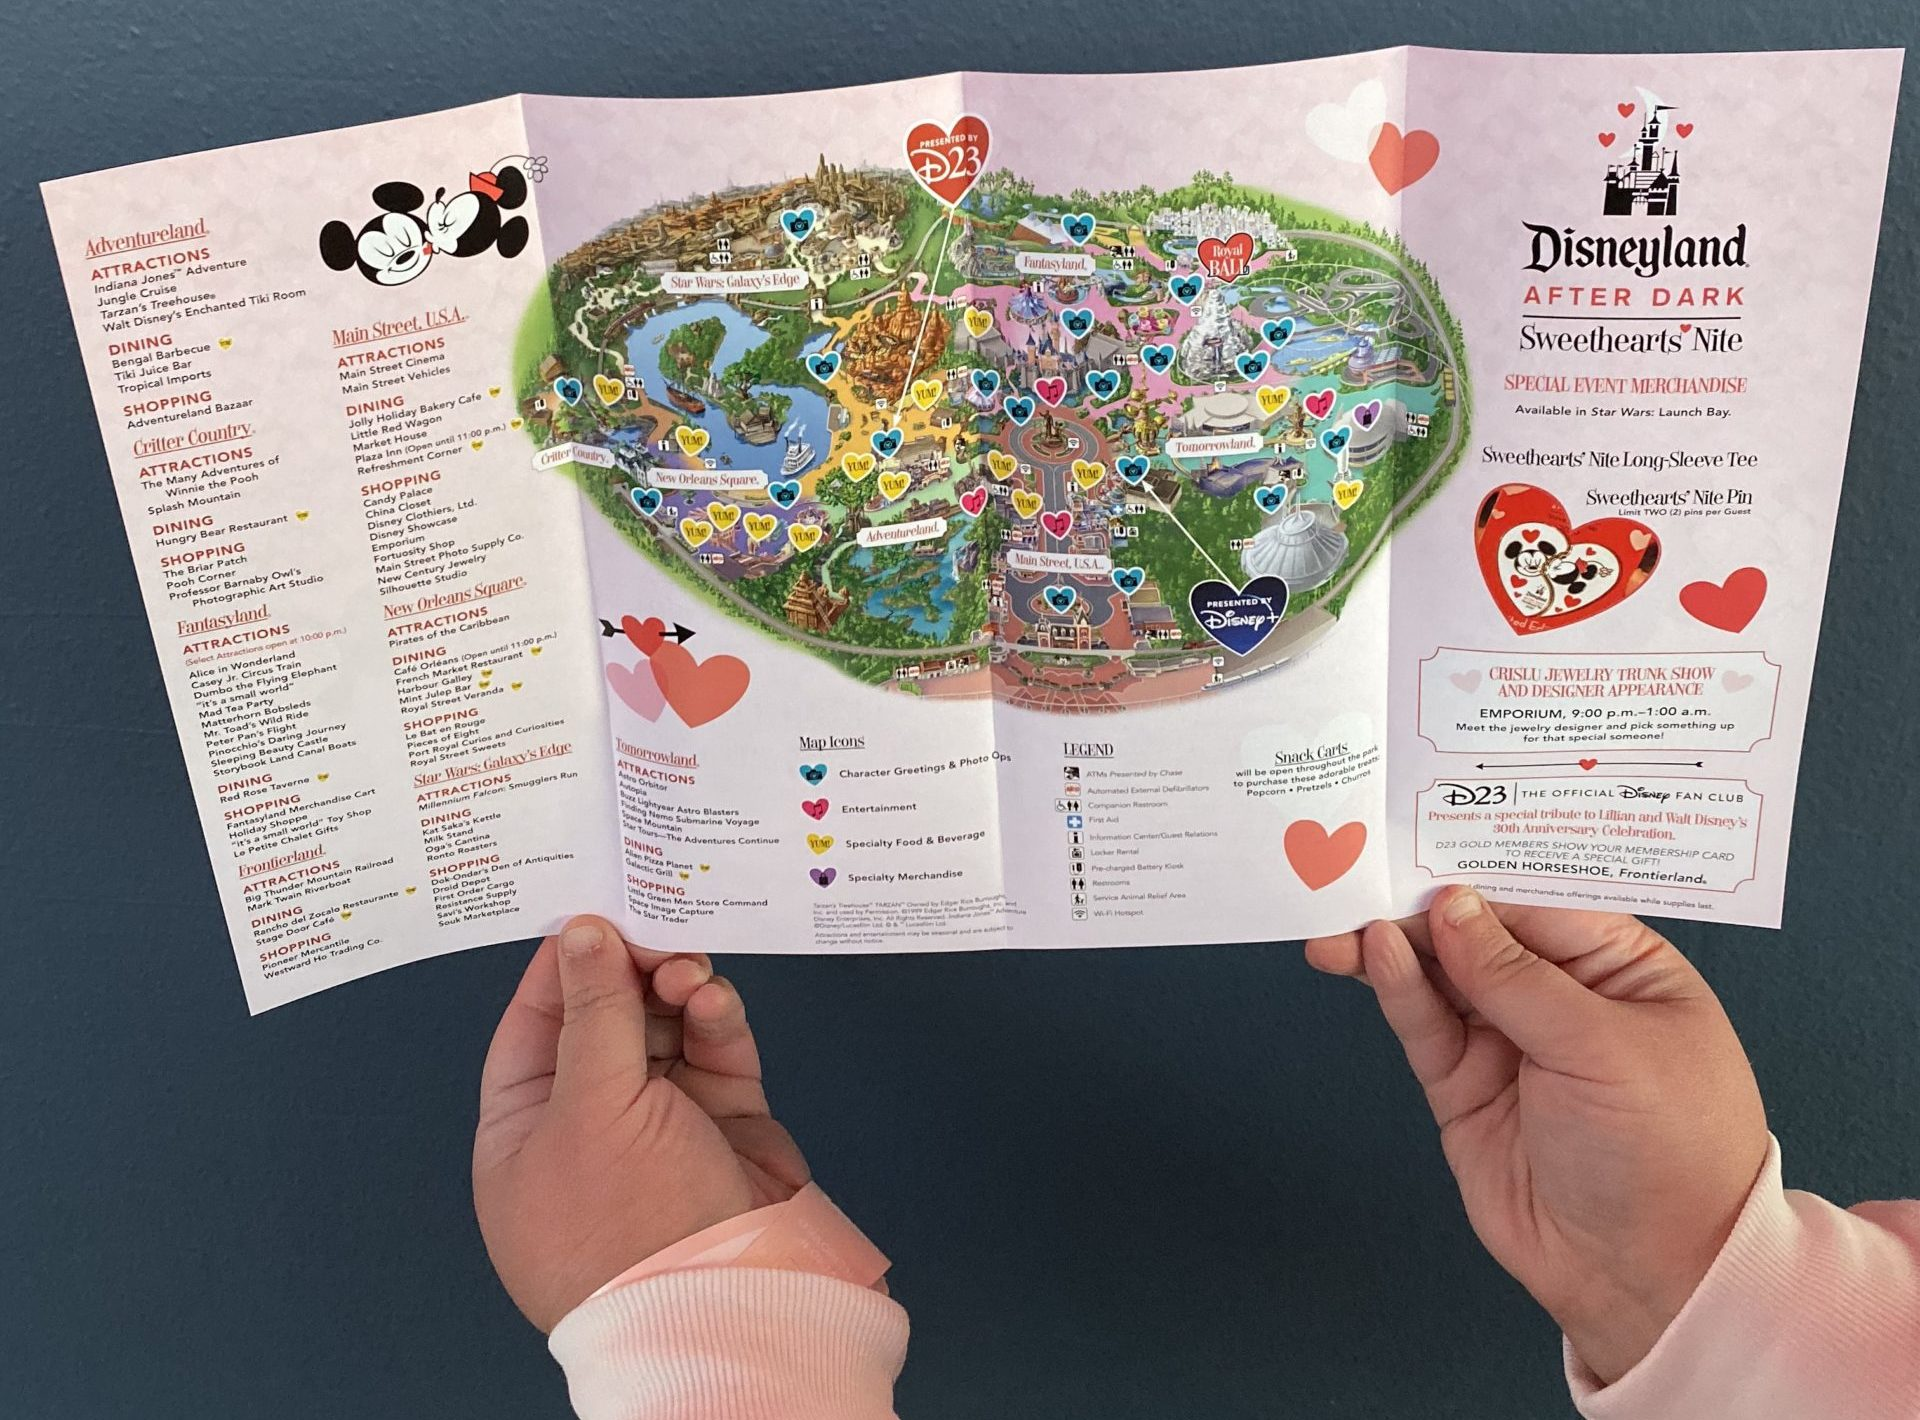 Disneyland After Dark Sweethearts Nite Map